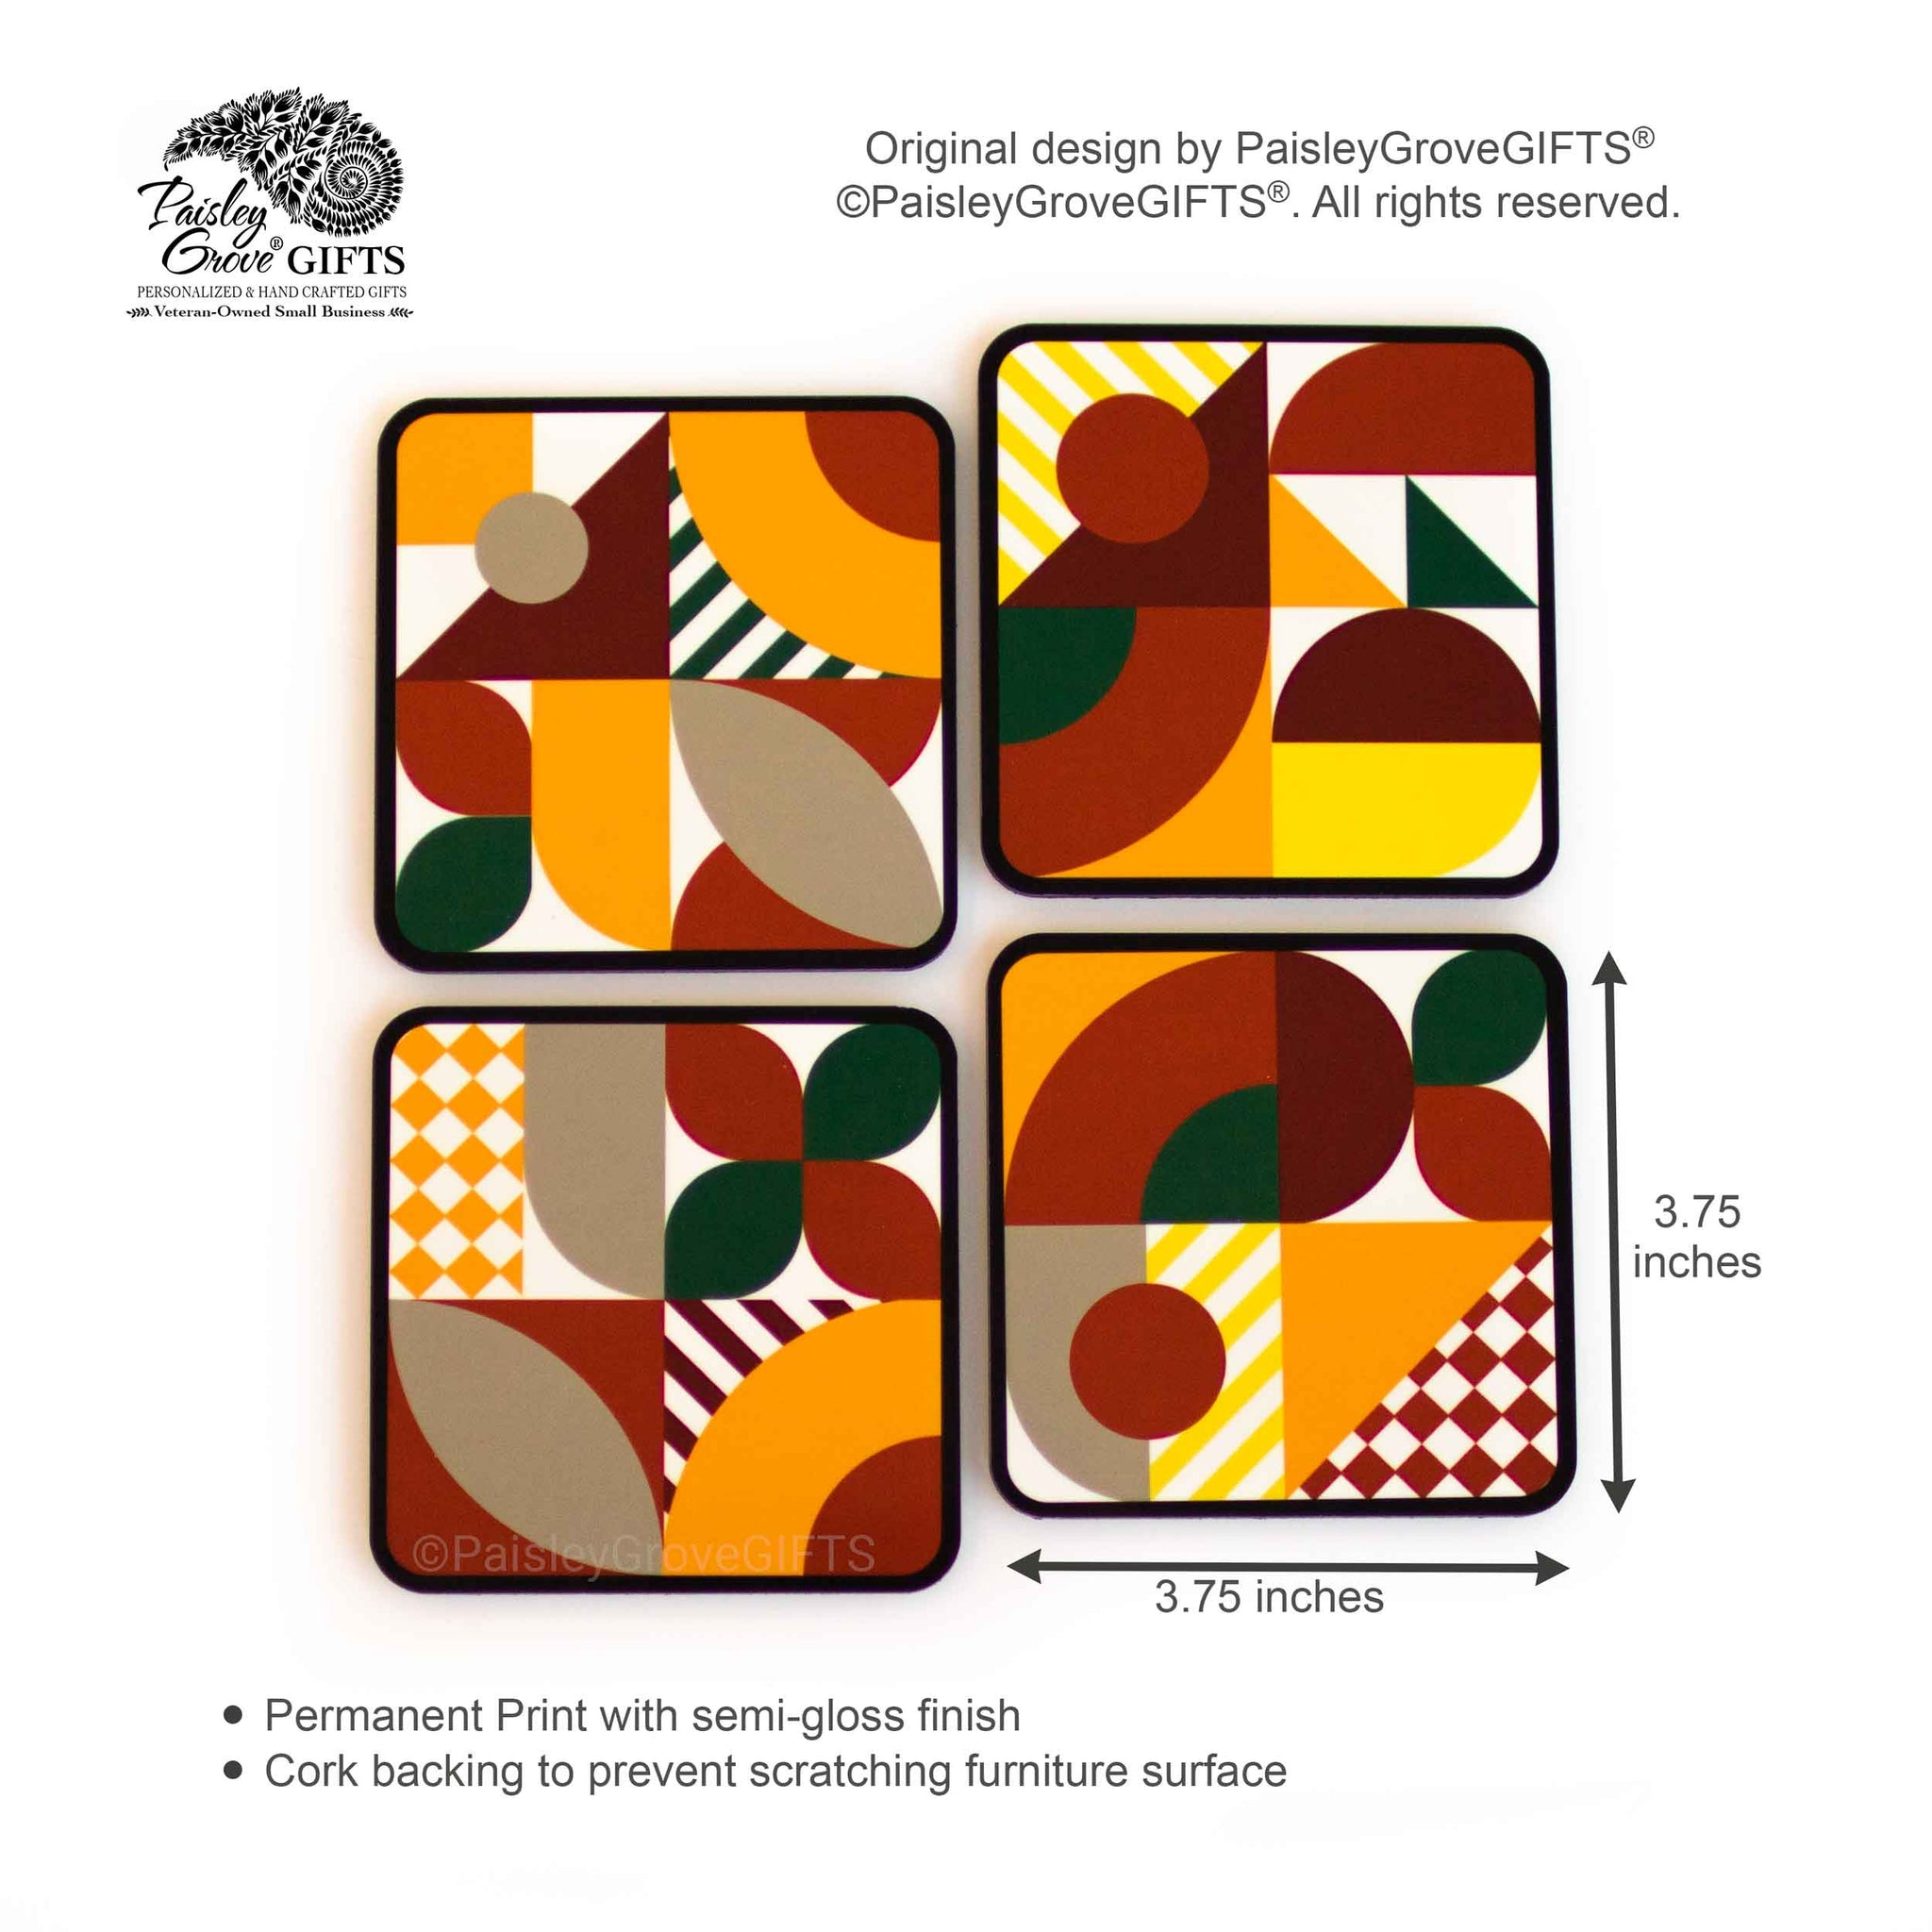 CopyrightPaisleyGroveGIFTS S701abcd Measurement and Detailed Information on Drink Coasters Modern Abstract Maximalist Style